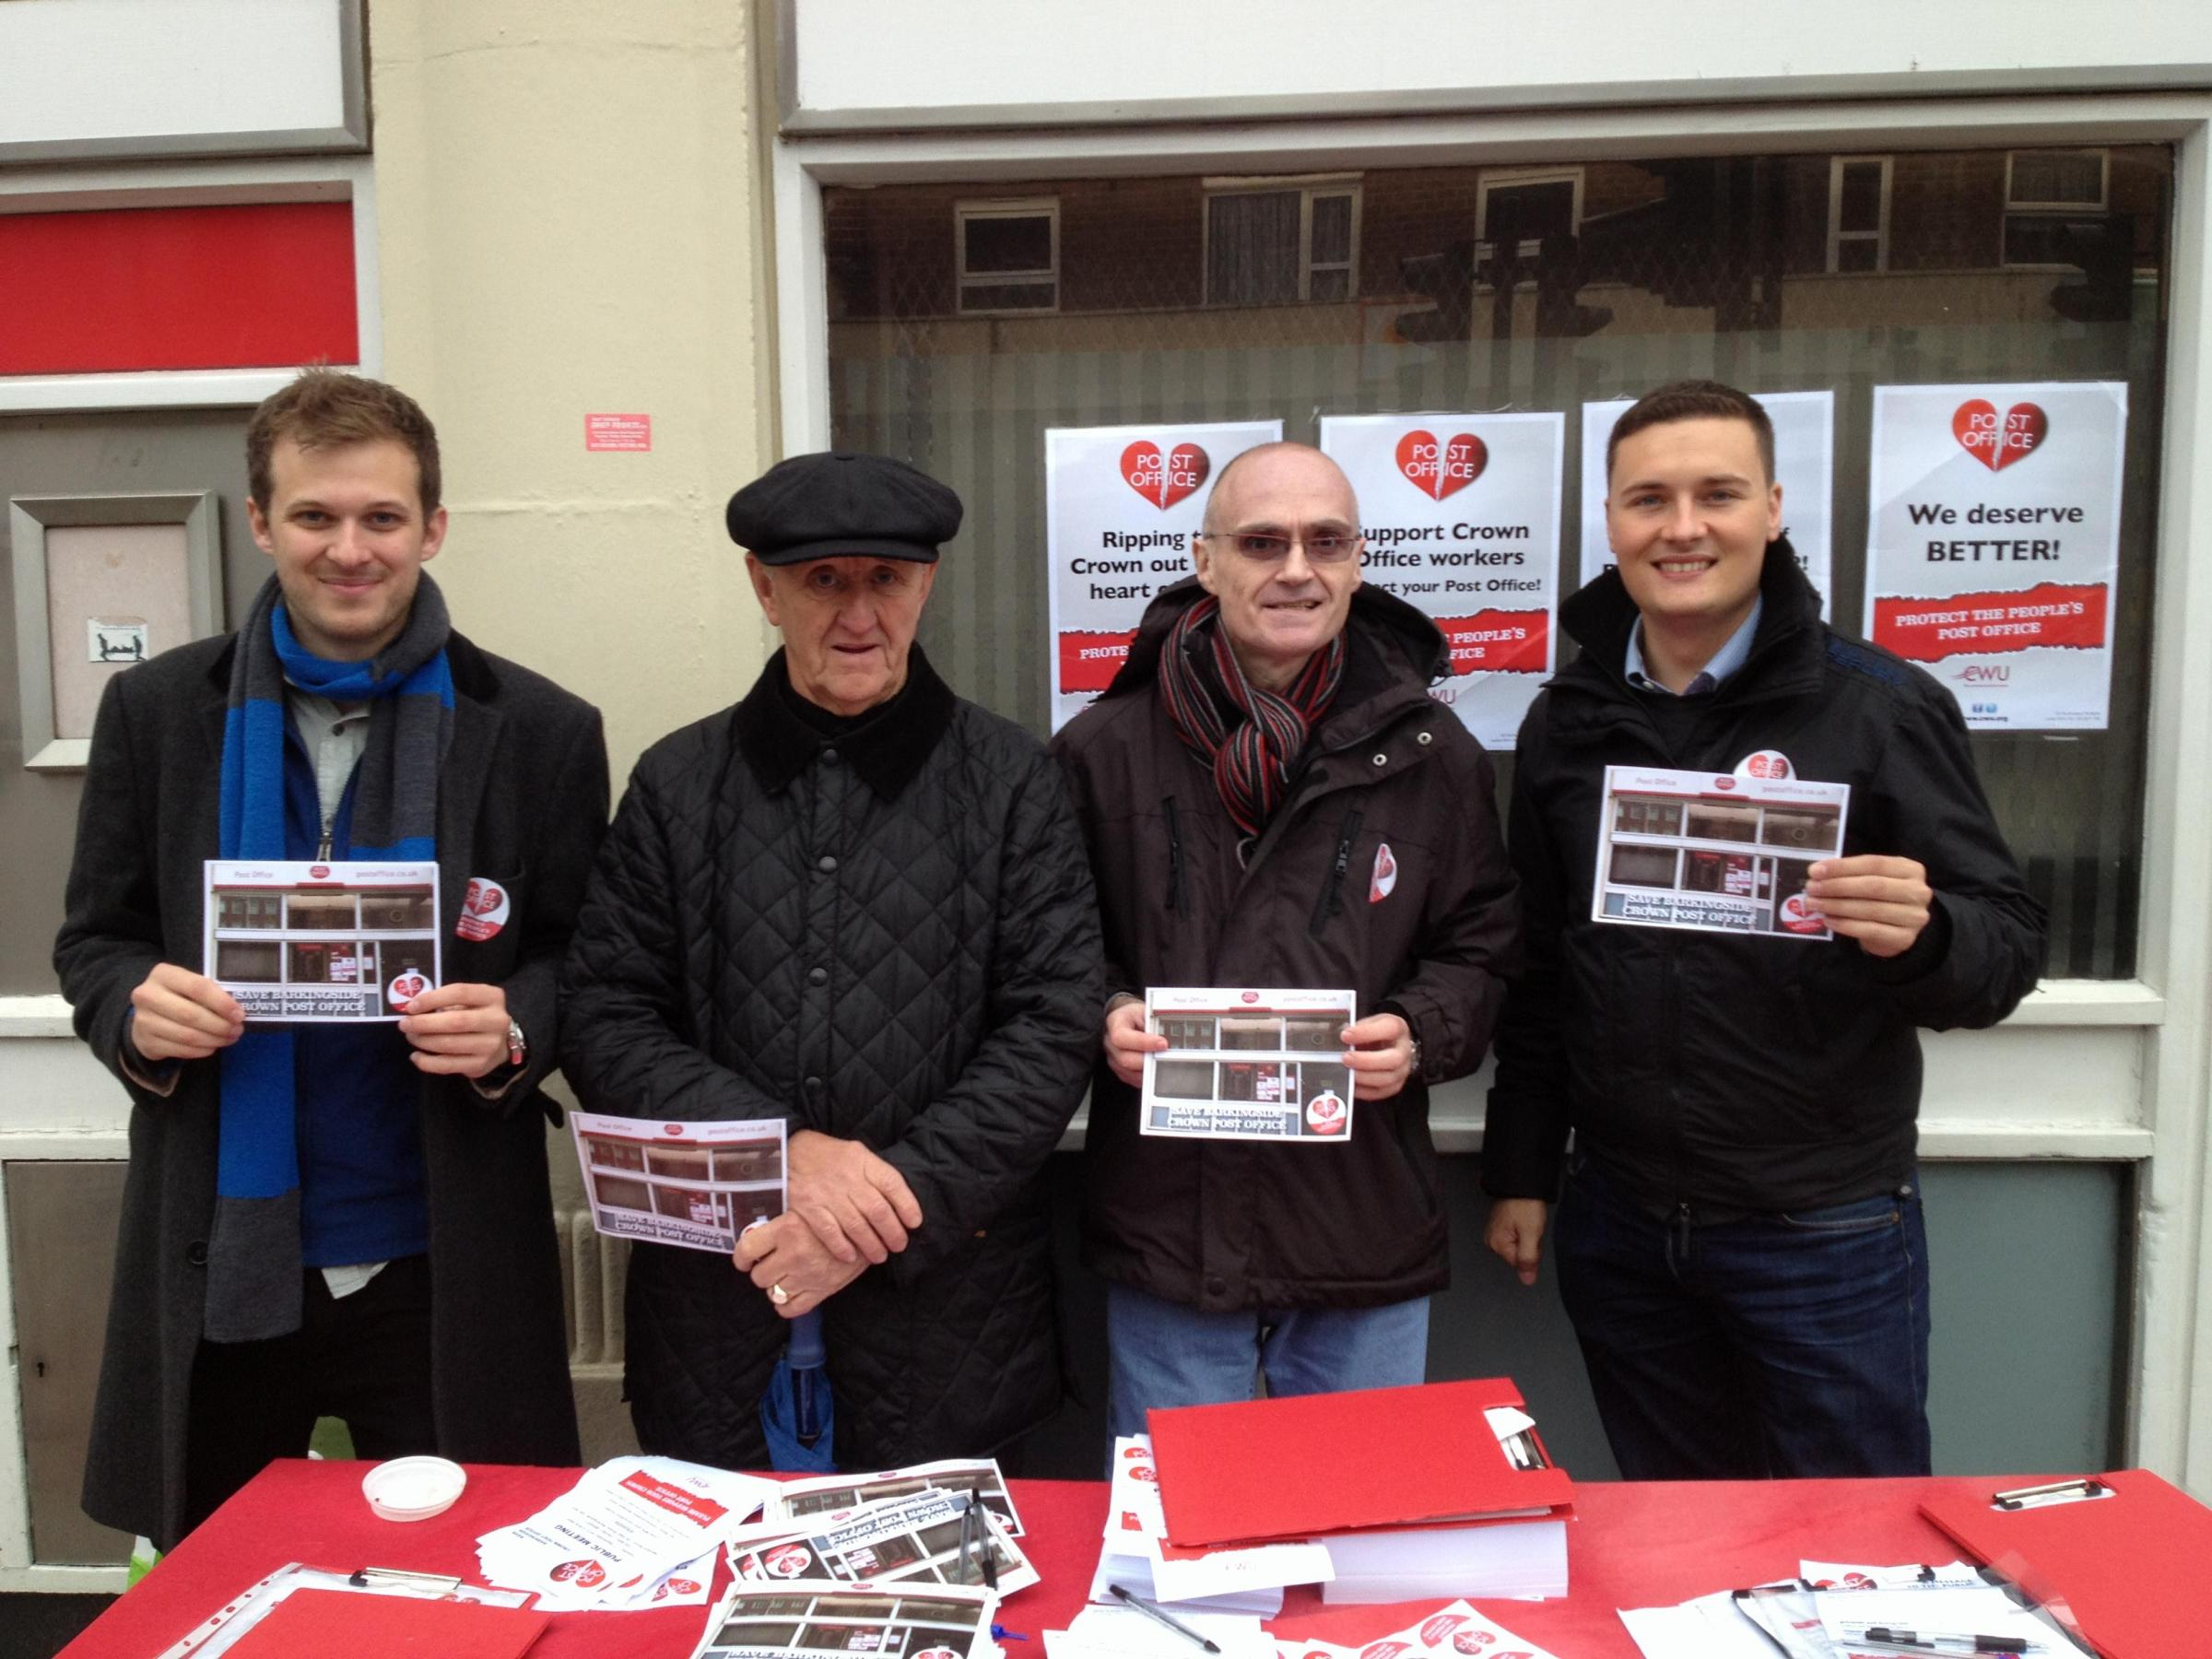 Campaigners outside Barkingside Post Office with Cllr Wes Streeting (right)